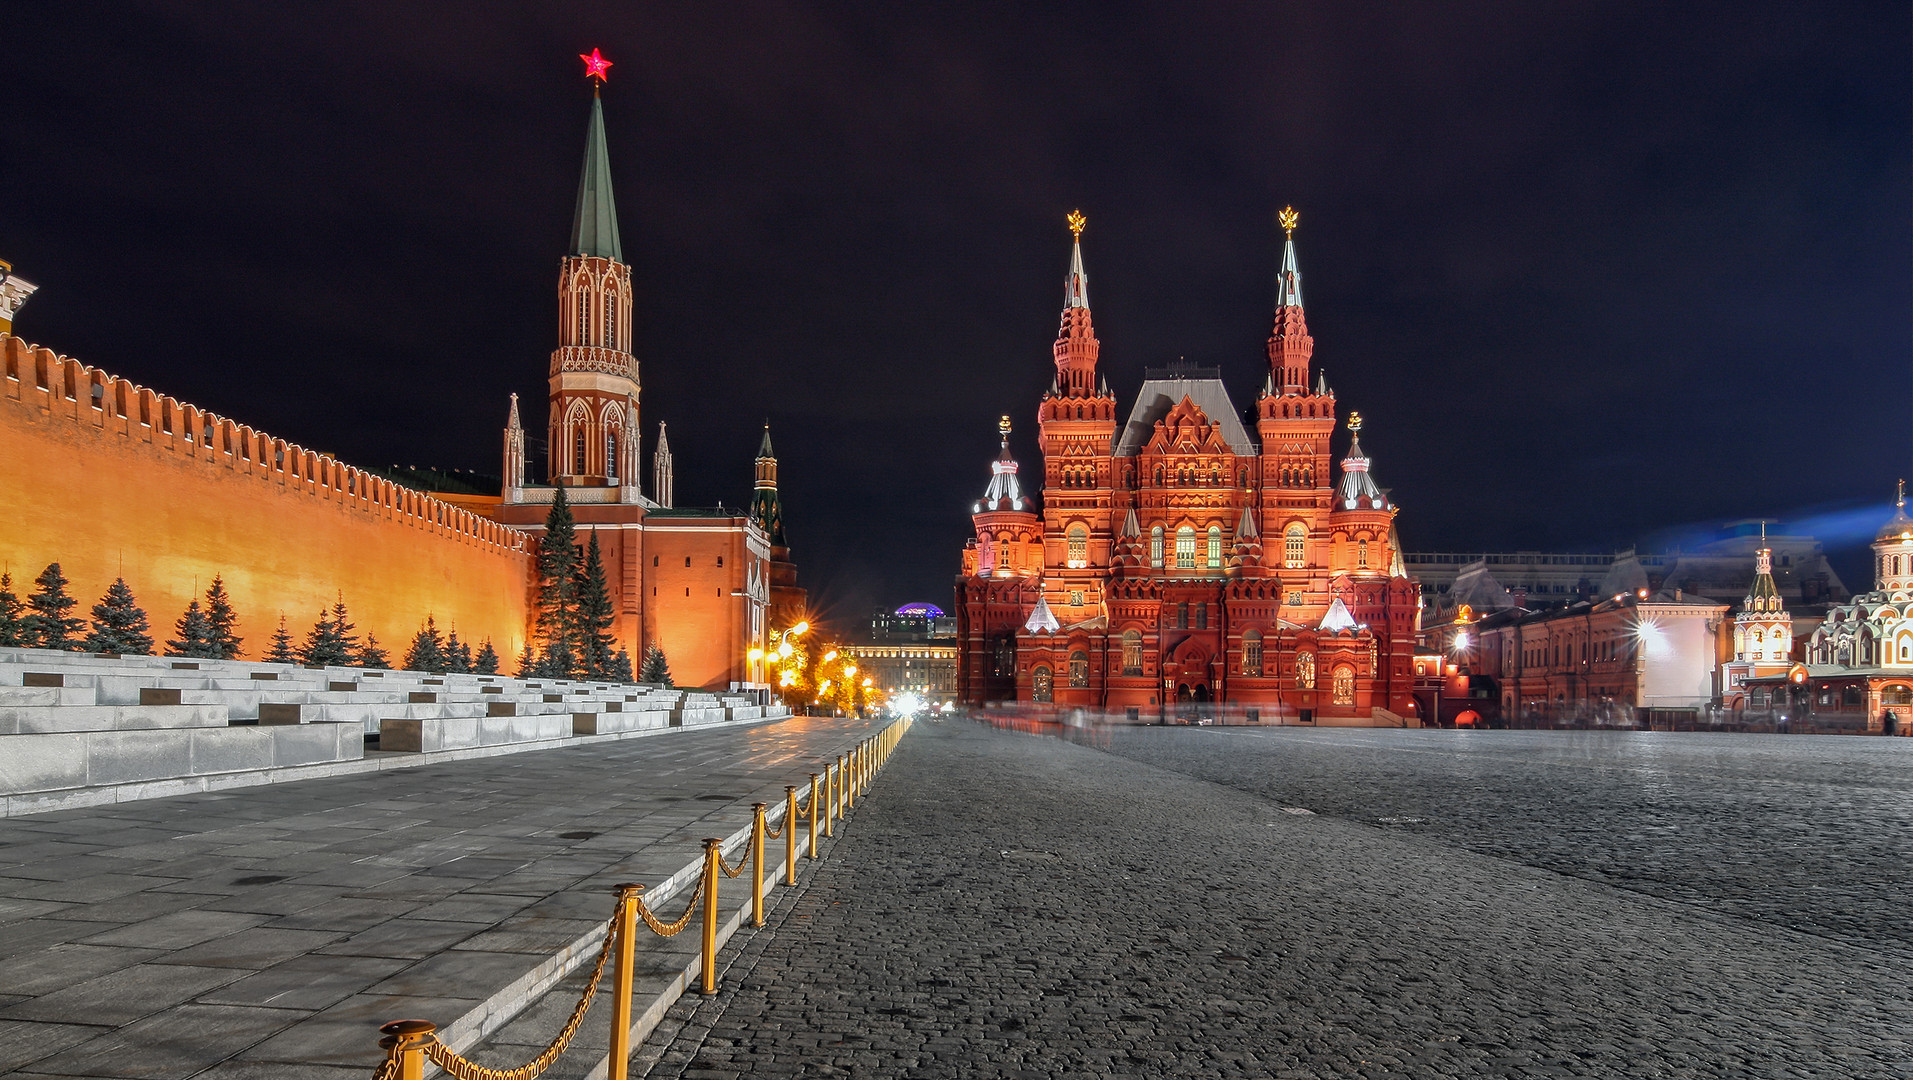 red-square-by-night-in-moscow-PLEXDB5.jp